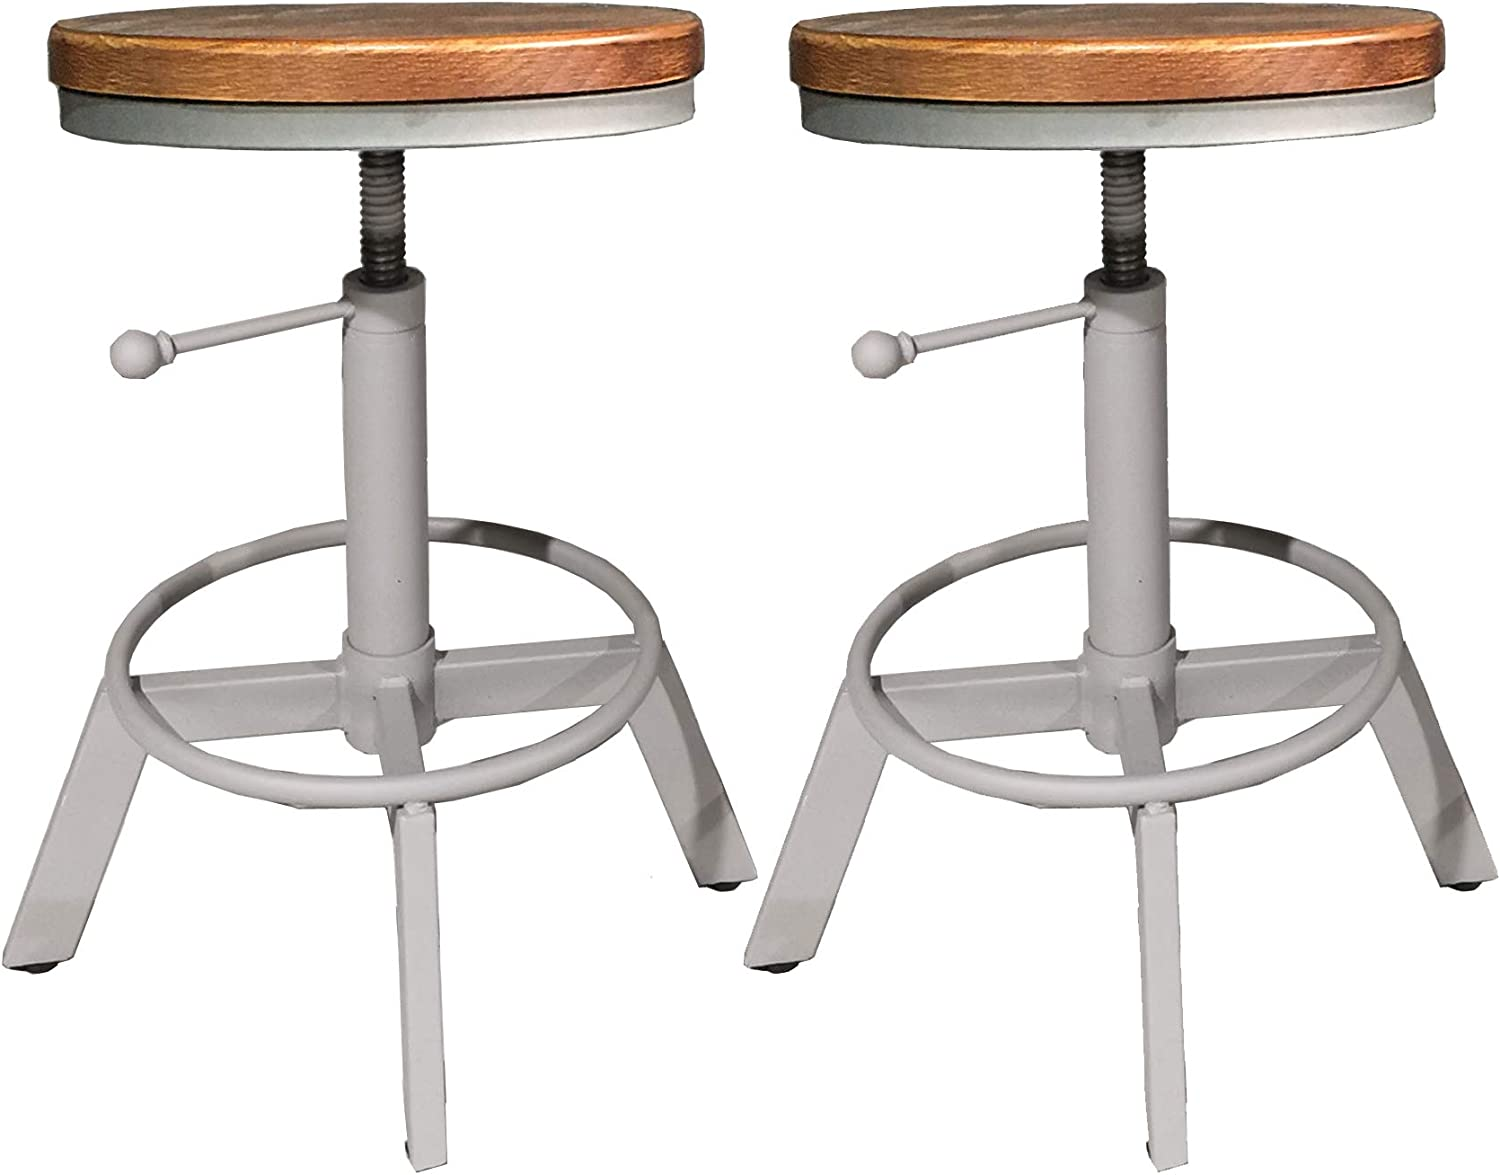 LOKKHAN Set of 2 Industrial Bar Stools-17-25 Counter Height Adjustable Kitchen Stools for Island-Rustic Farmhouse Swivel Wood Metal Bar Stool Dining Chair Cafe Stool